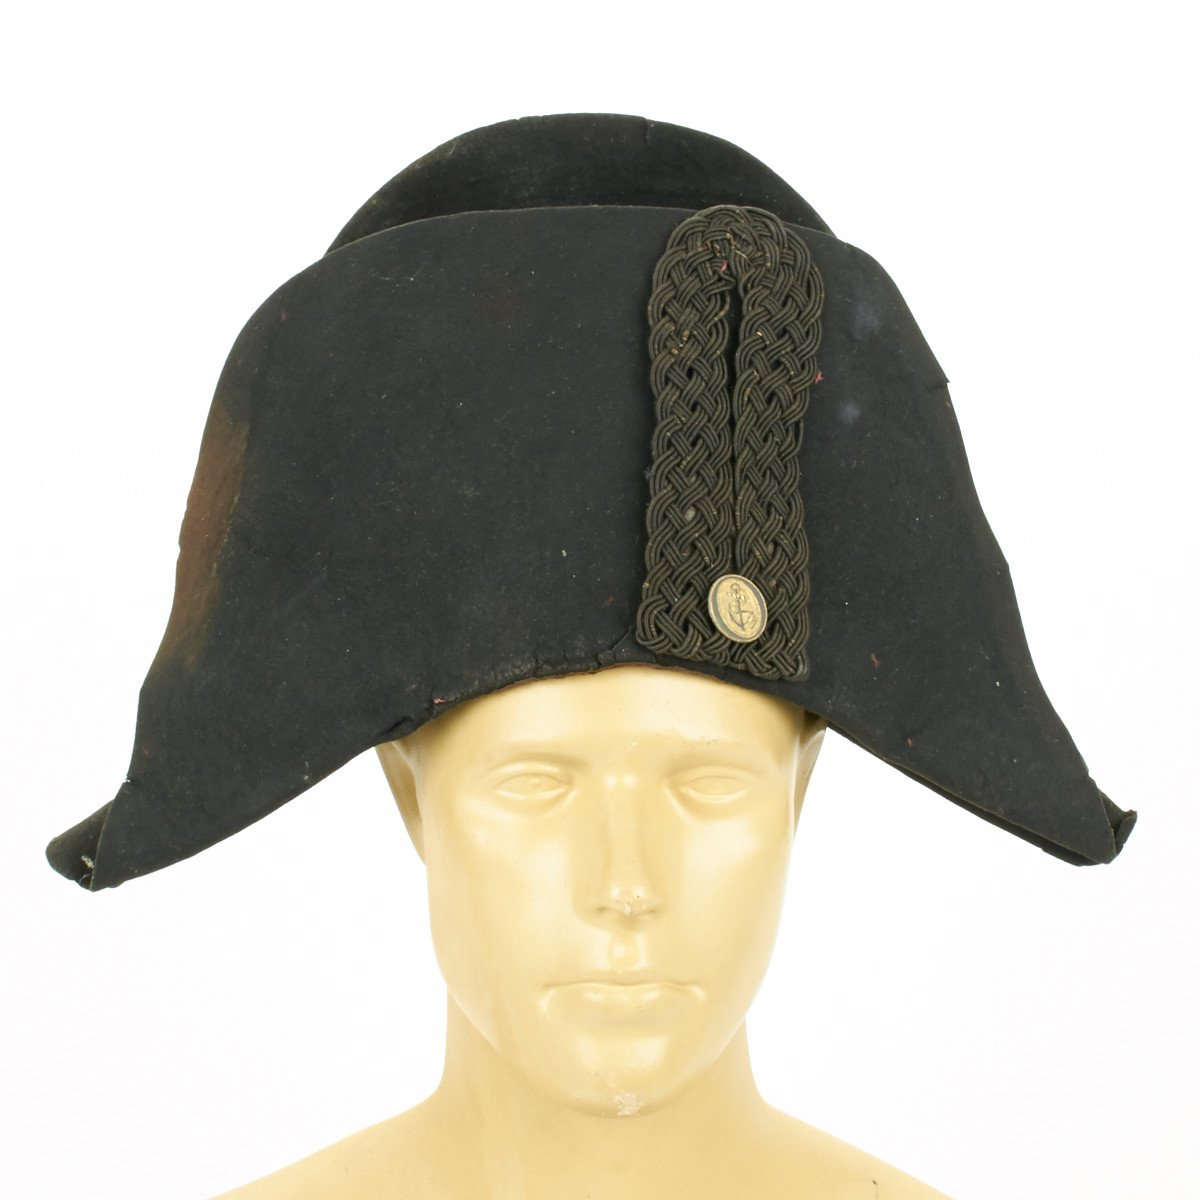 531c3eb0b98 Original 18th Century British Royal Naval Officer Collection- Bicorn Hat  with Will Dated 1783